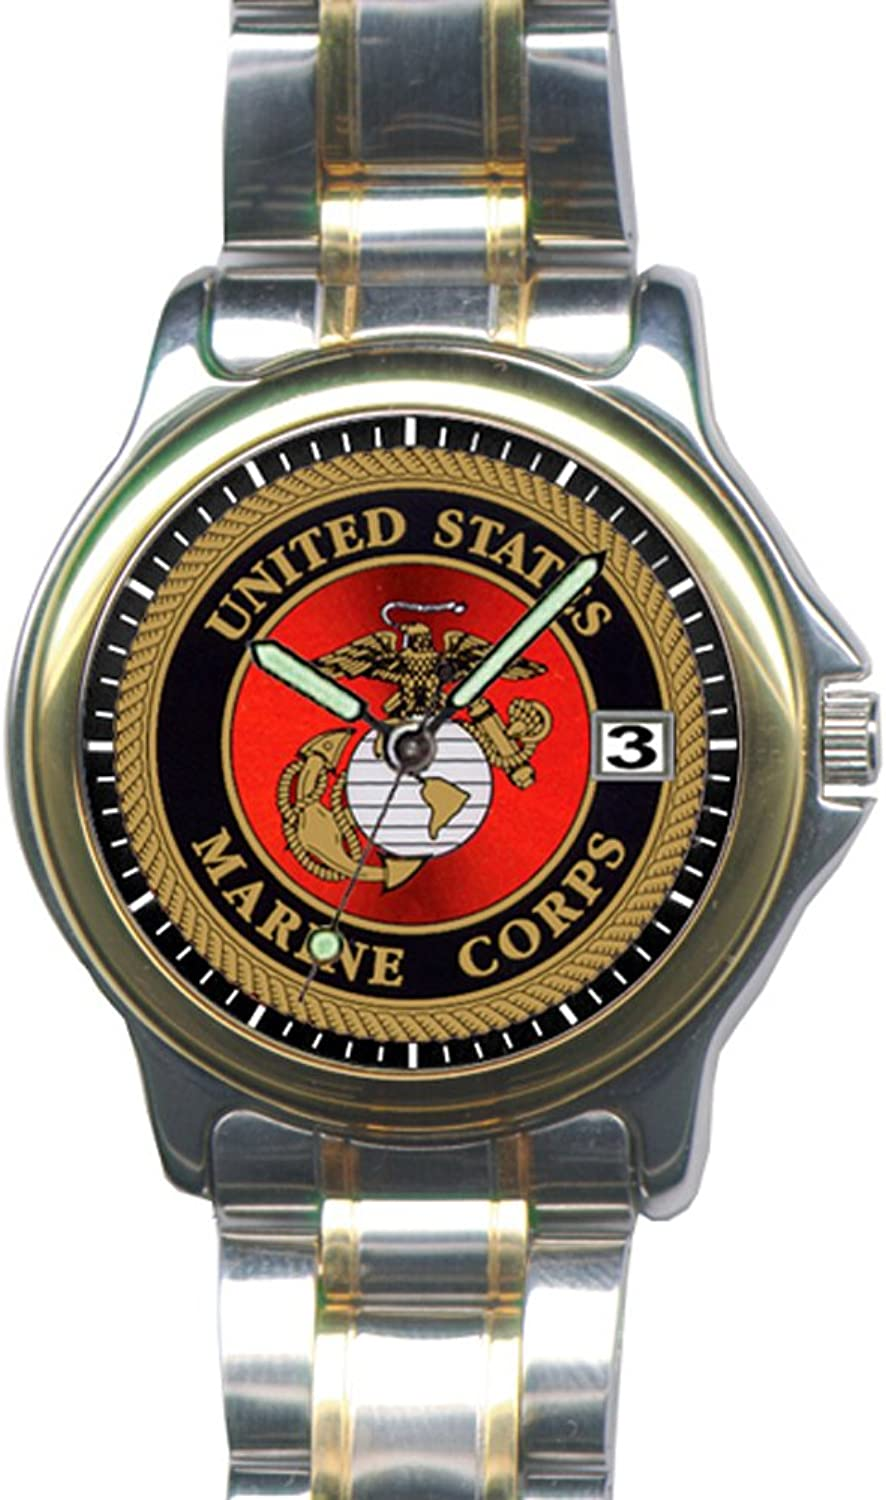 Aquaforce Marines Two Tone Watch with 38mm Face and Two Tone Strap